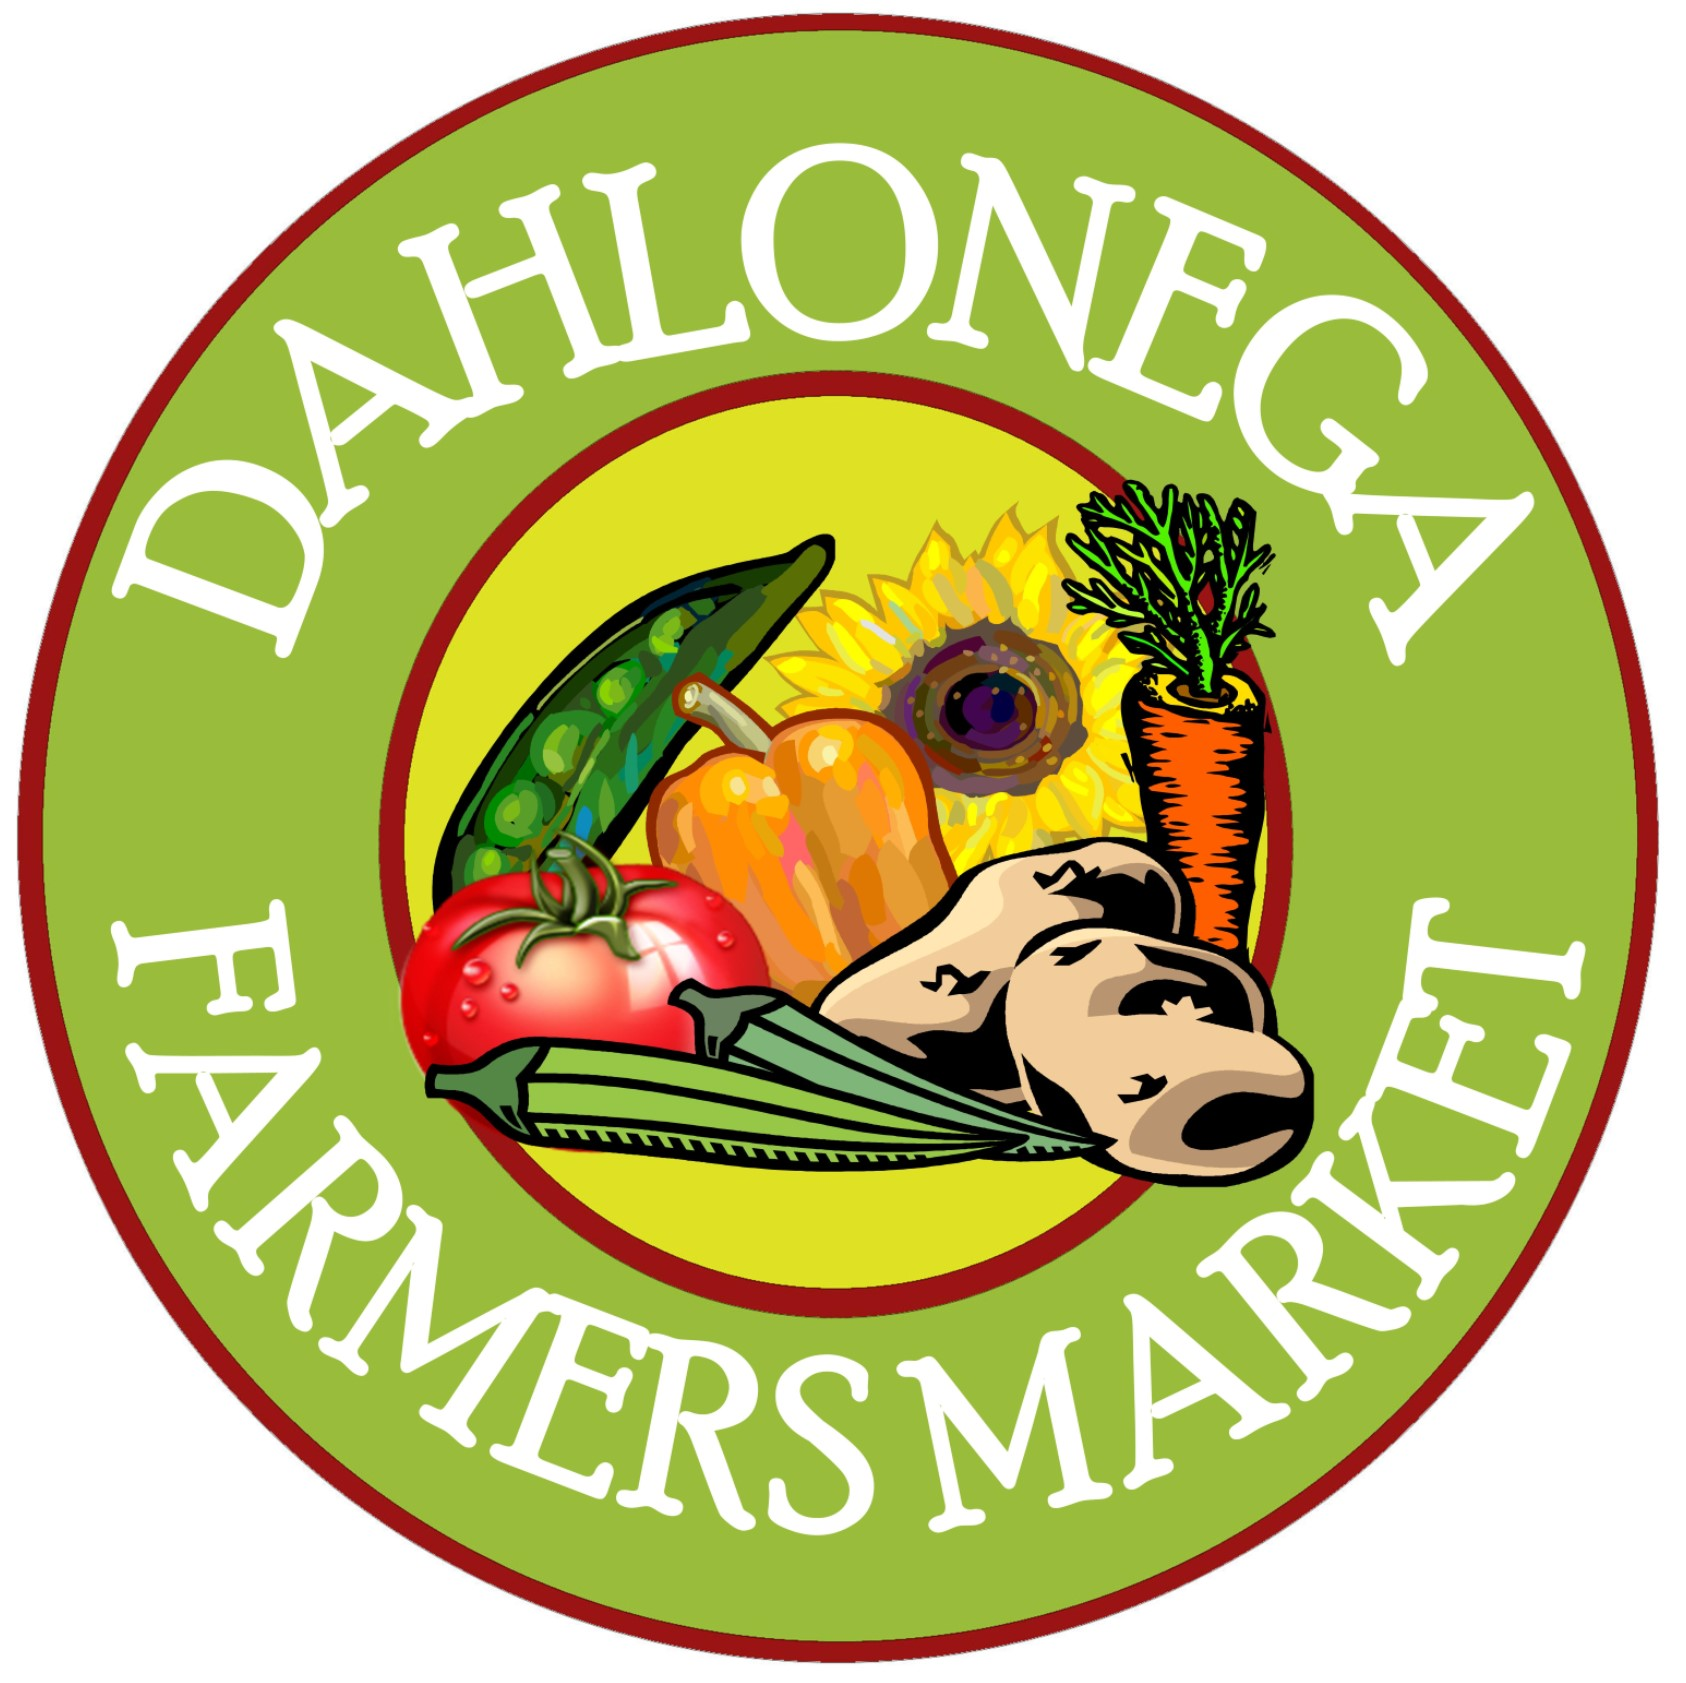 Dahlonega Farmers Market   May - October  Tuesday 2pm-6pm; Saturday 8am-1pm  465 Riley Road  Dahlonega, GA 30533  Contact: Danielle Bell  dbell@dahlonegadda.org